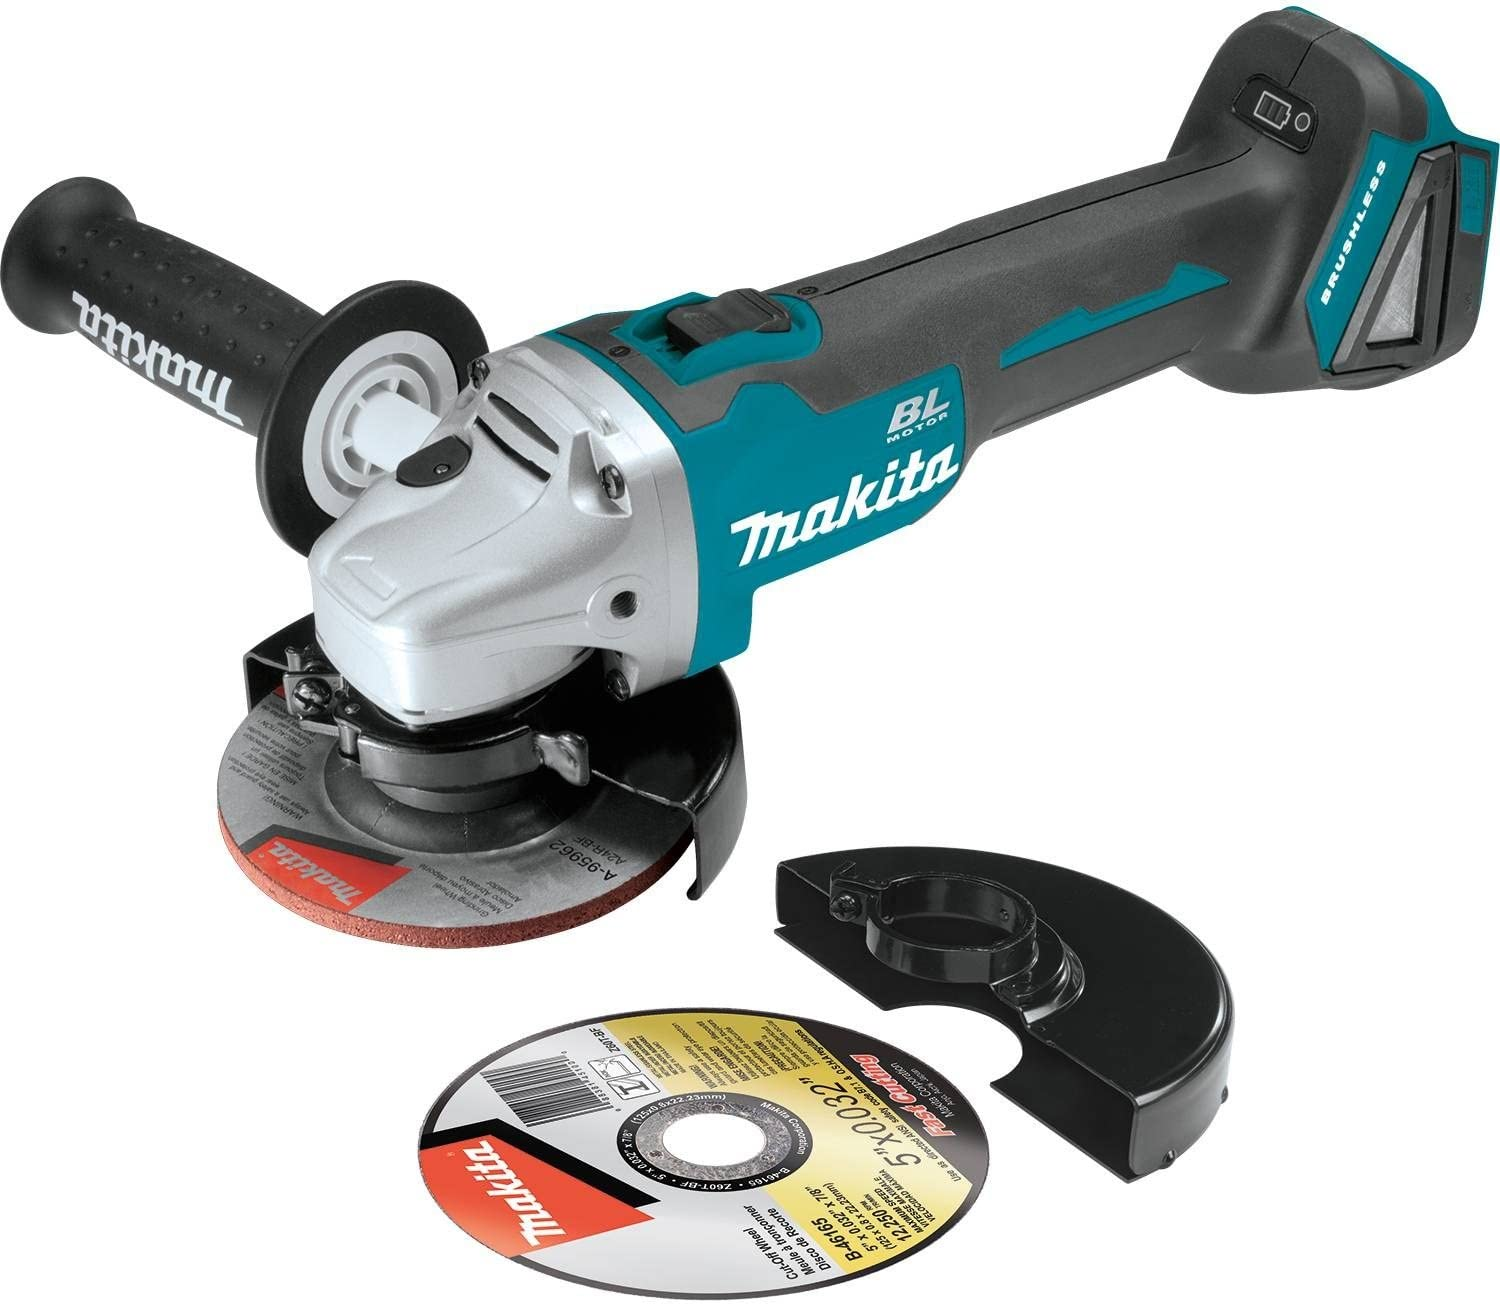 """Makita Xag04Z 18V Lxt Lithium-Ion Brushless Cordless 4-1/2"""" / 5&Quot; Cut-Off/Angle Grinder, Tool Only"""